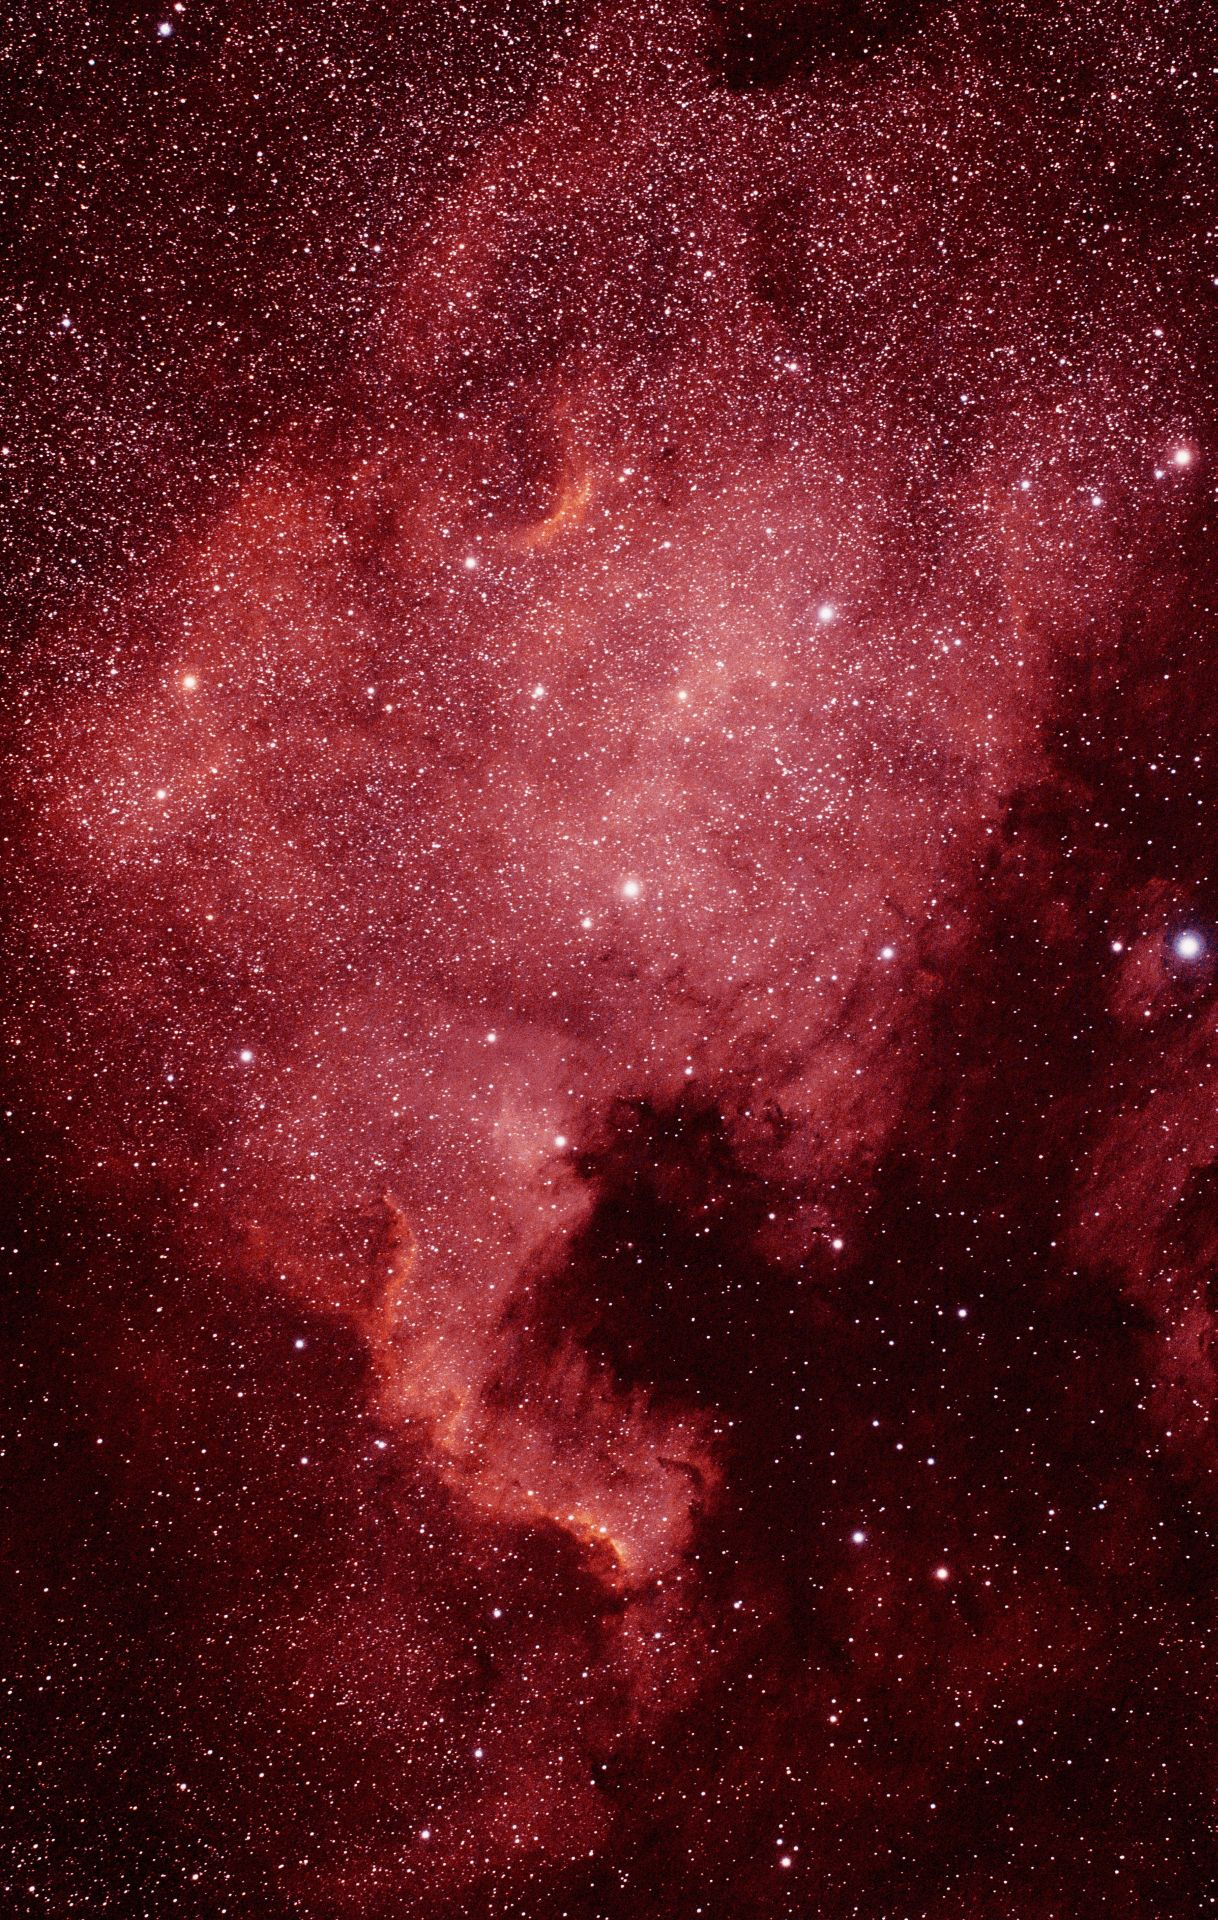 Combined NGC7000_DSS_001_PI_000_PS_002R.jpg